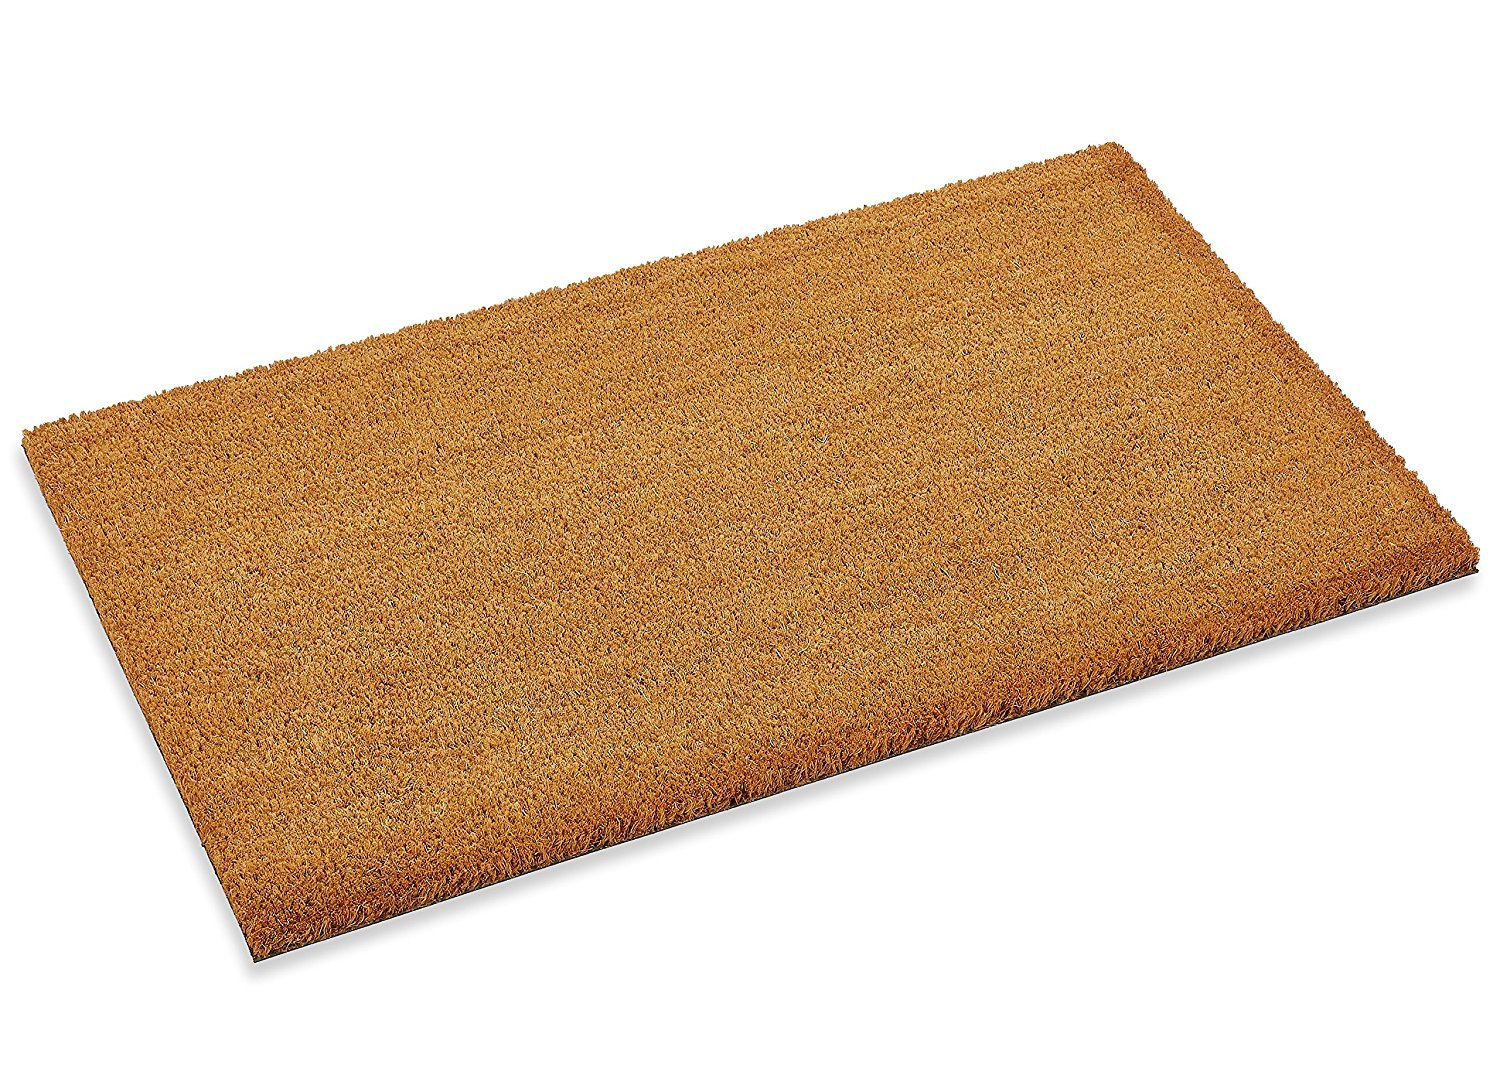 Kempf custom cut 1/2'' inch Thick Coco mat with vinyl backing , great for recessed area entrances (3' x 5')